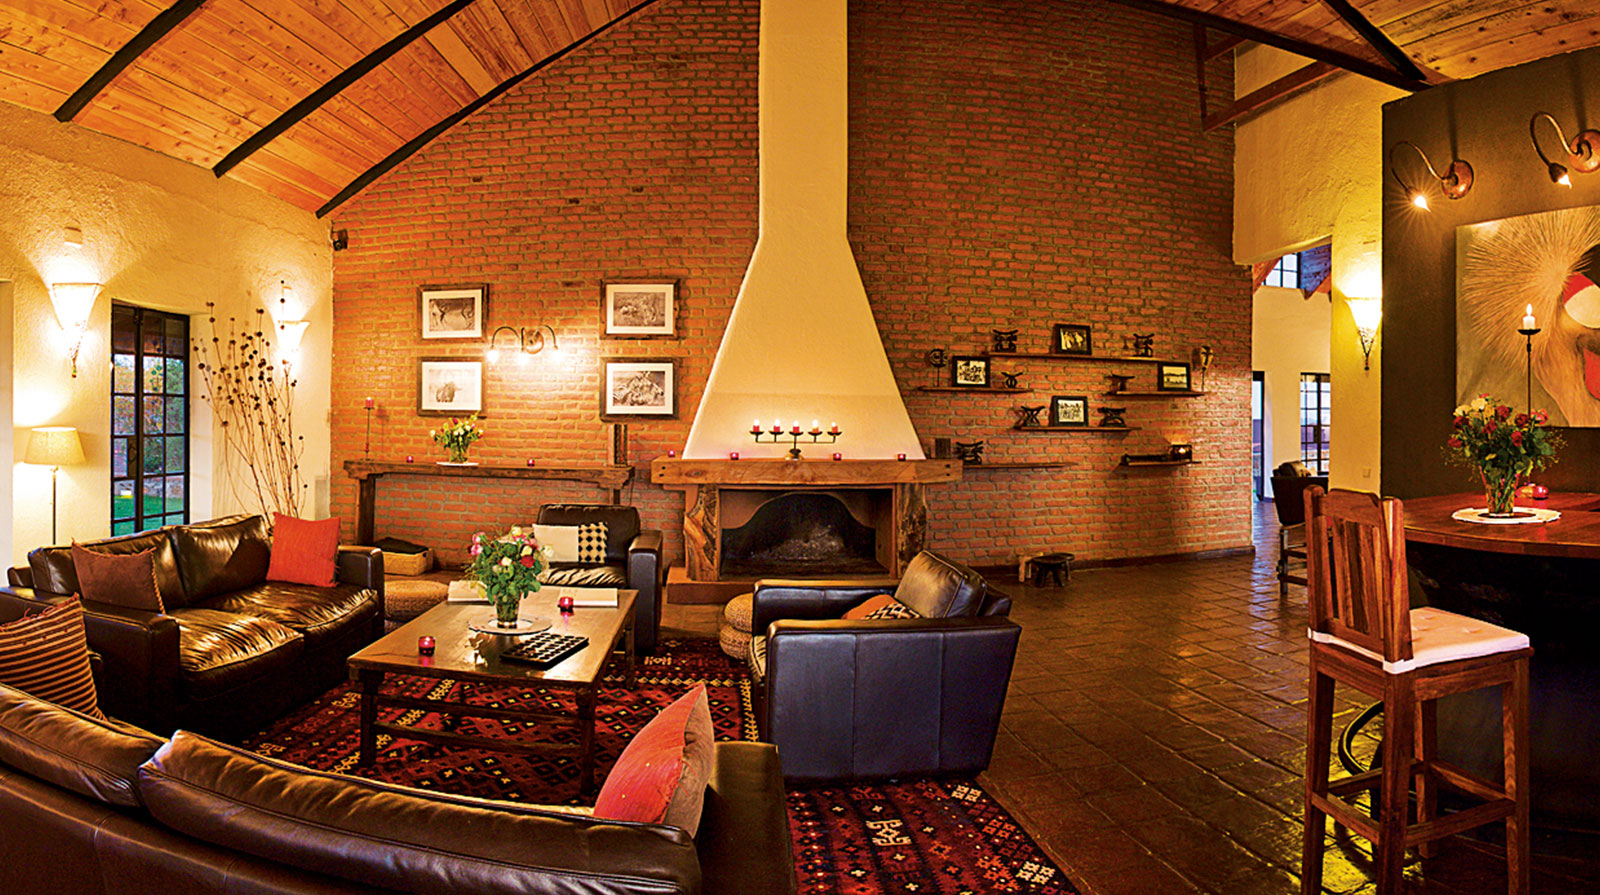 Bashay Rift Lodge - Warm atmosphere